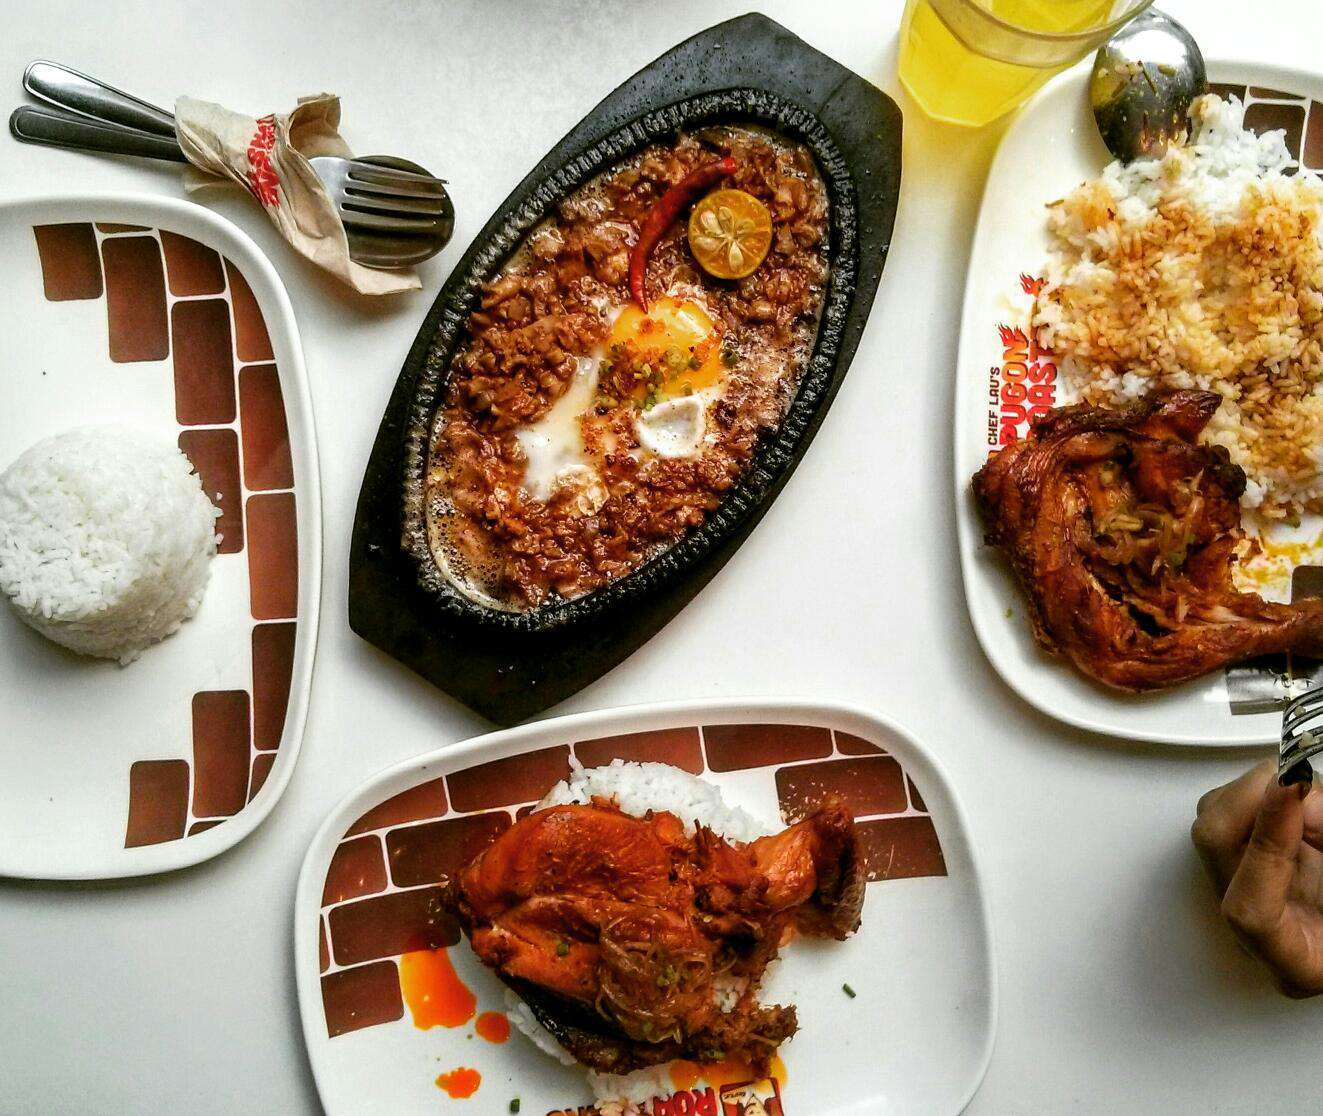 Country Kitchen Zomato: Where To Eat Lunch On The Cheap In Salcedo Village